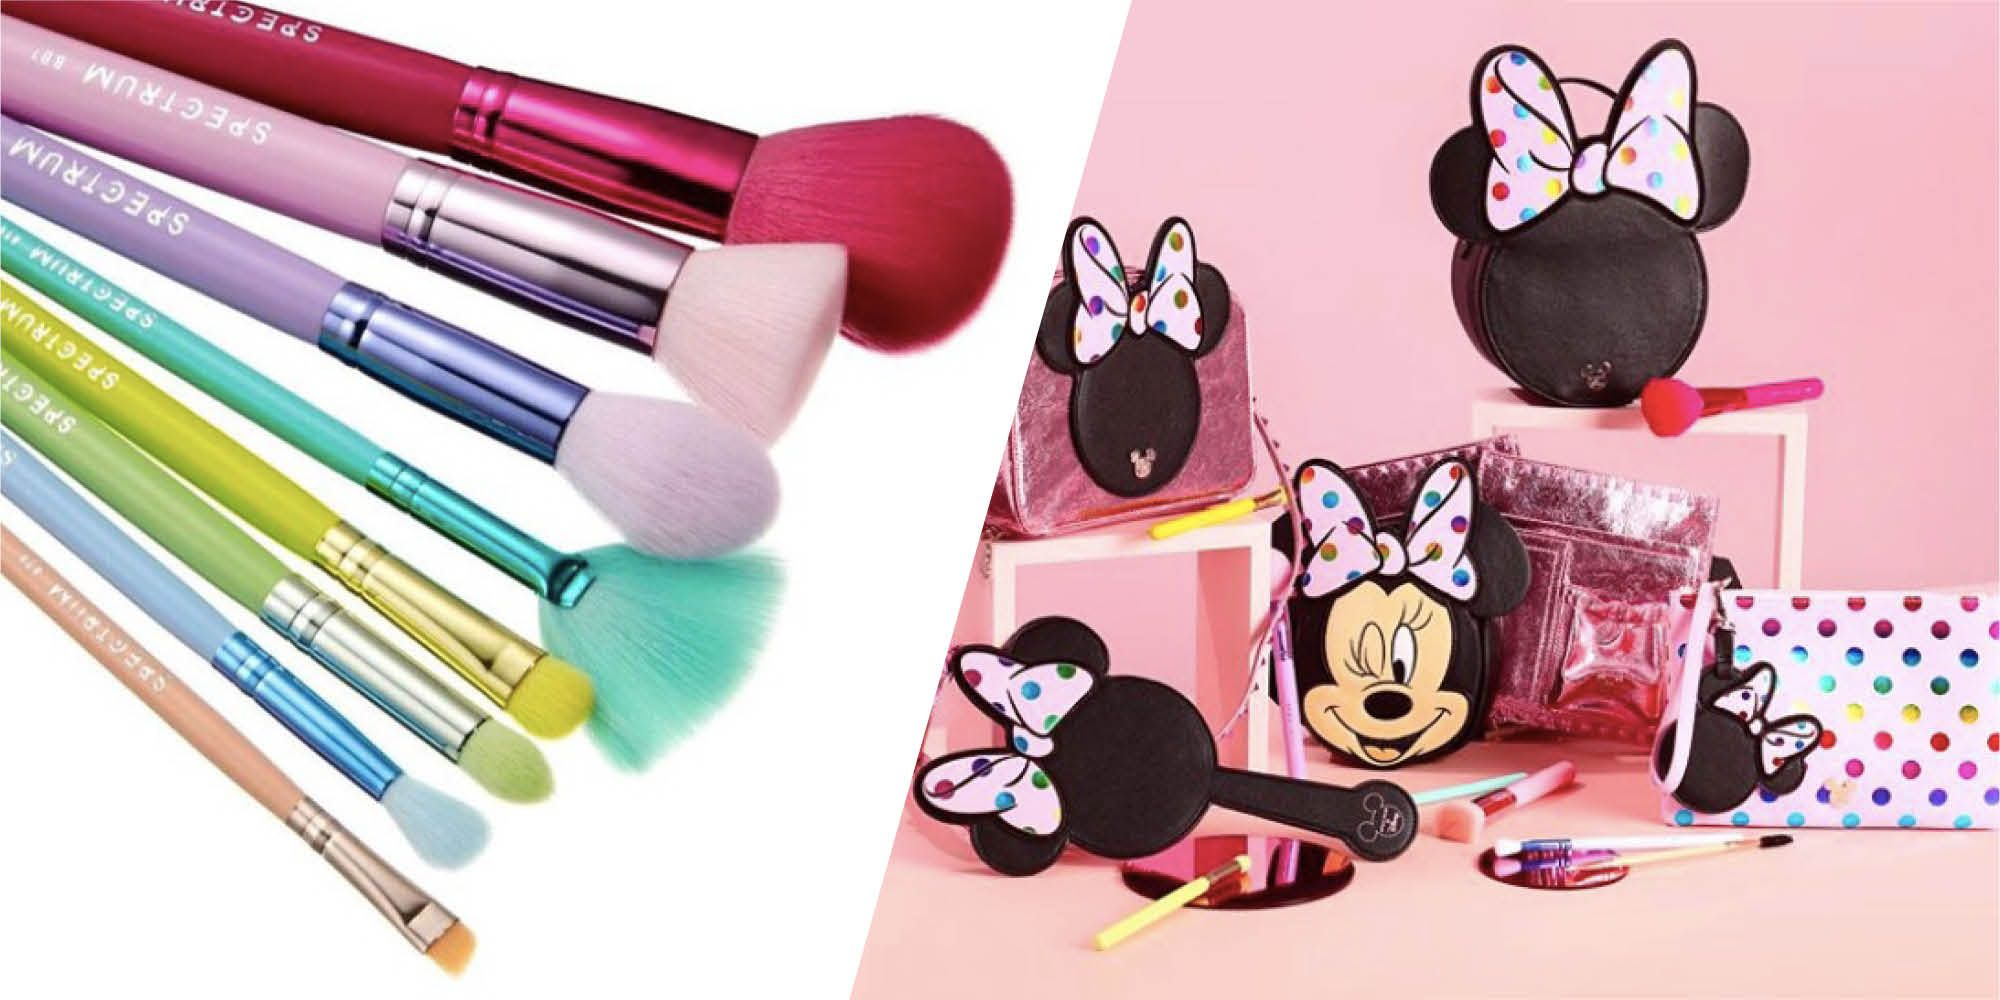 spectrum makeup brushes minnie mouse disney collection